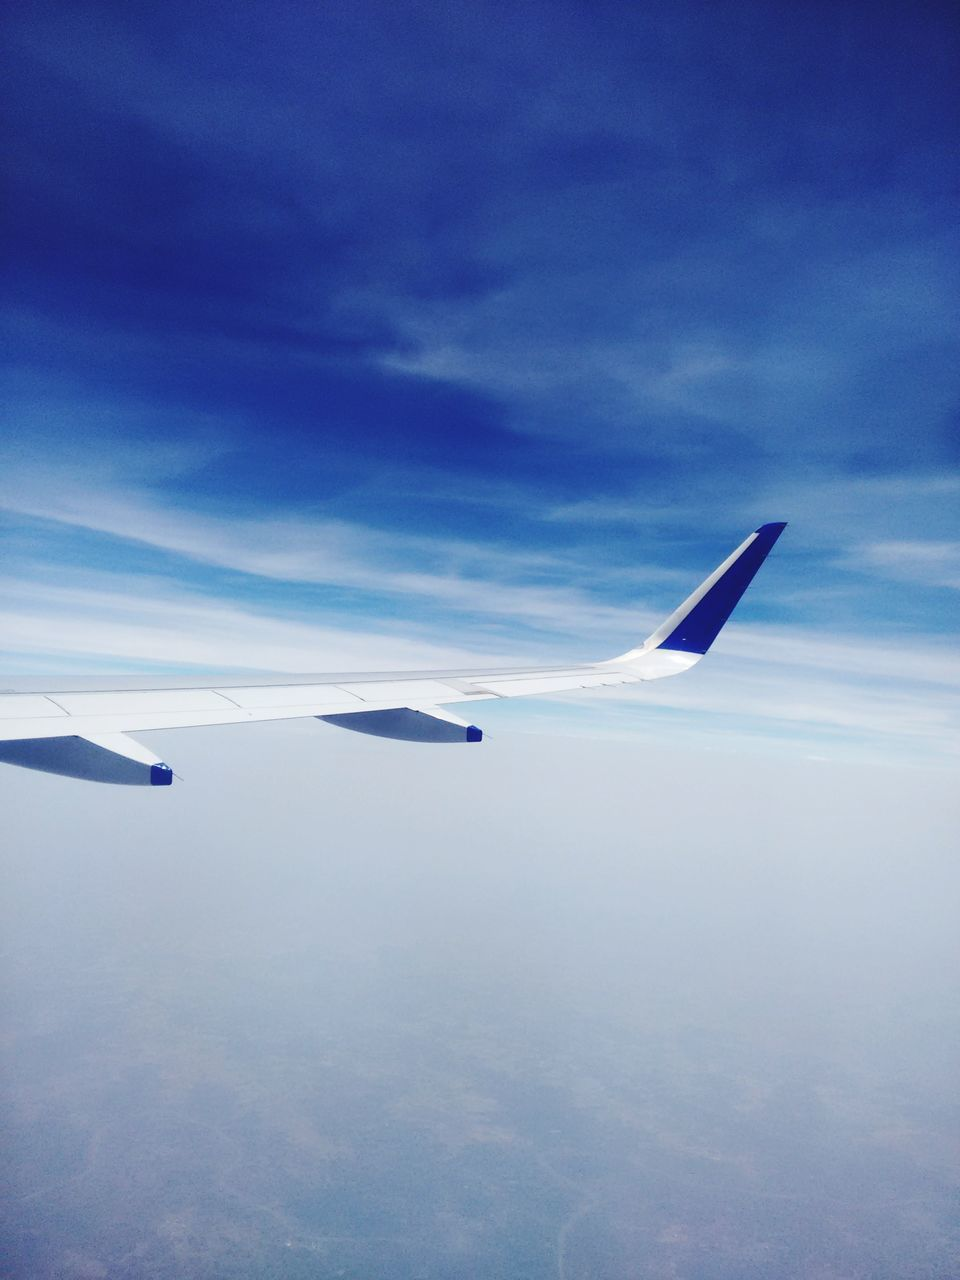 airplane, transportation, flying, sky, air vehicle, airplane wing, mode of transport, cloud - sky, blue, mid-air, aerial view, no people, journey, nature, travel, day, aircraft wing, outdoors, beauty in nature, scenics, sea, water